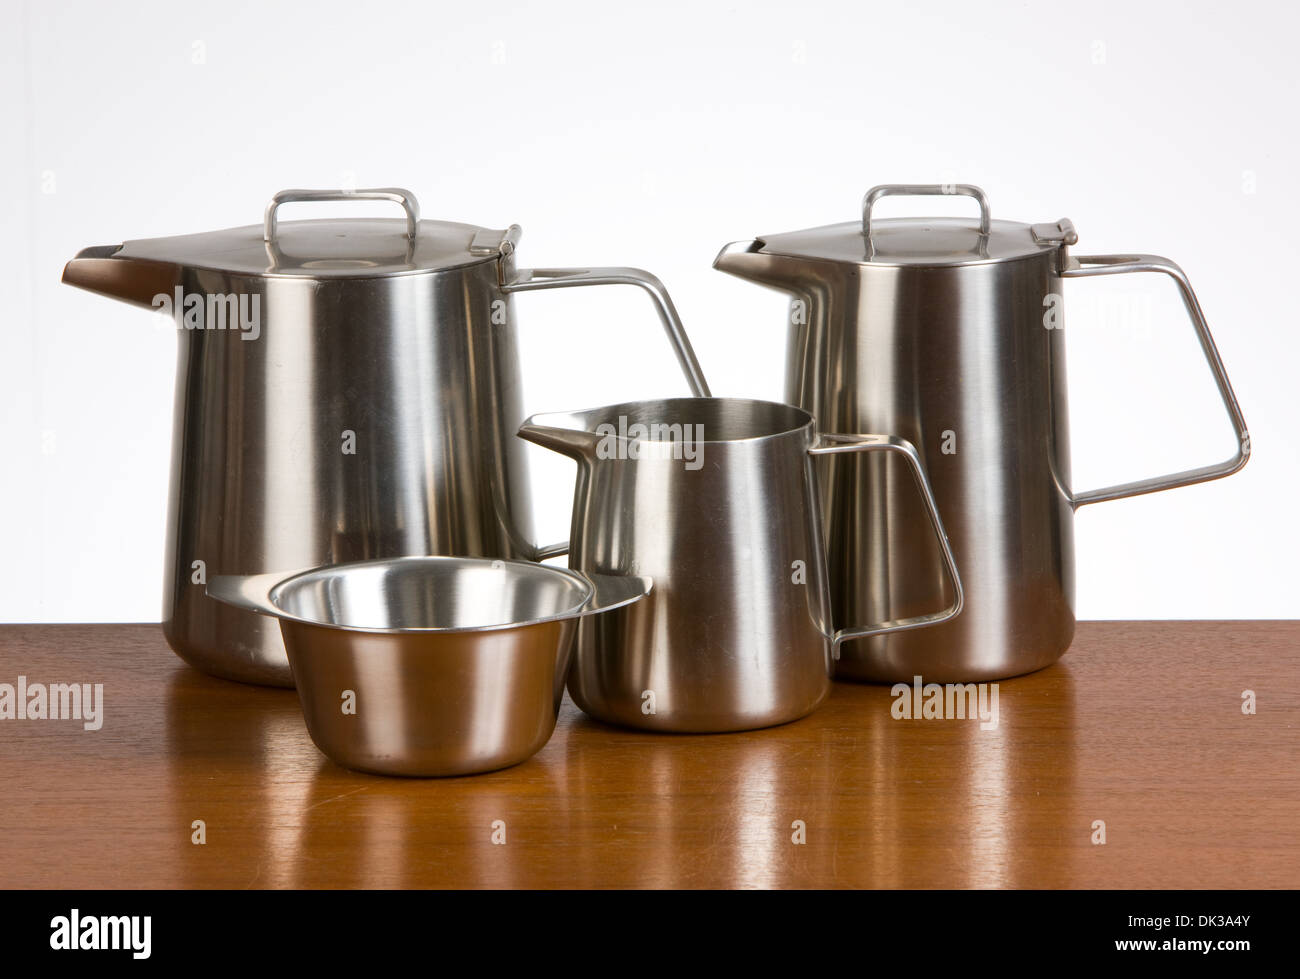 Vintage English Stainless Steel teaset designed for Old Hall by Robert Welch - Stock Image